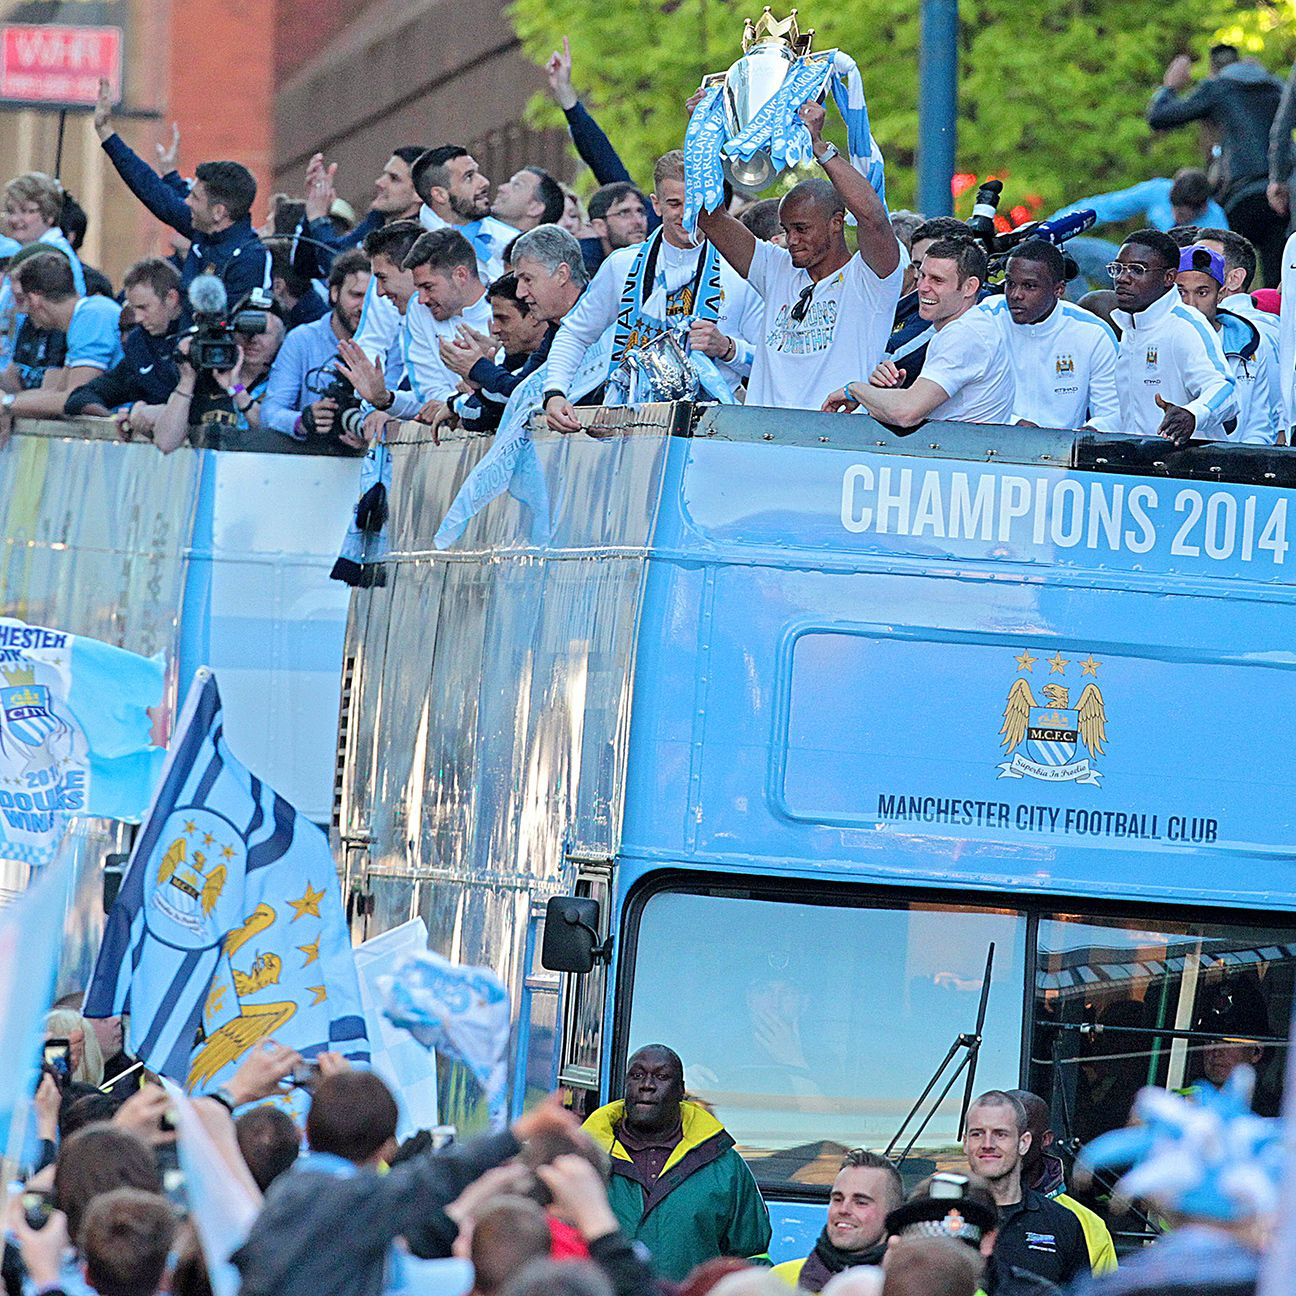 Man City won it all last season but they'll face stiffer competition in 2014-15.